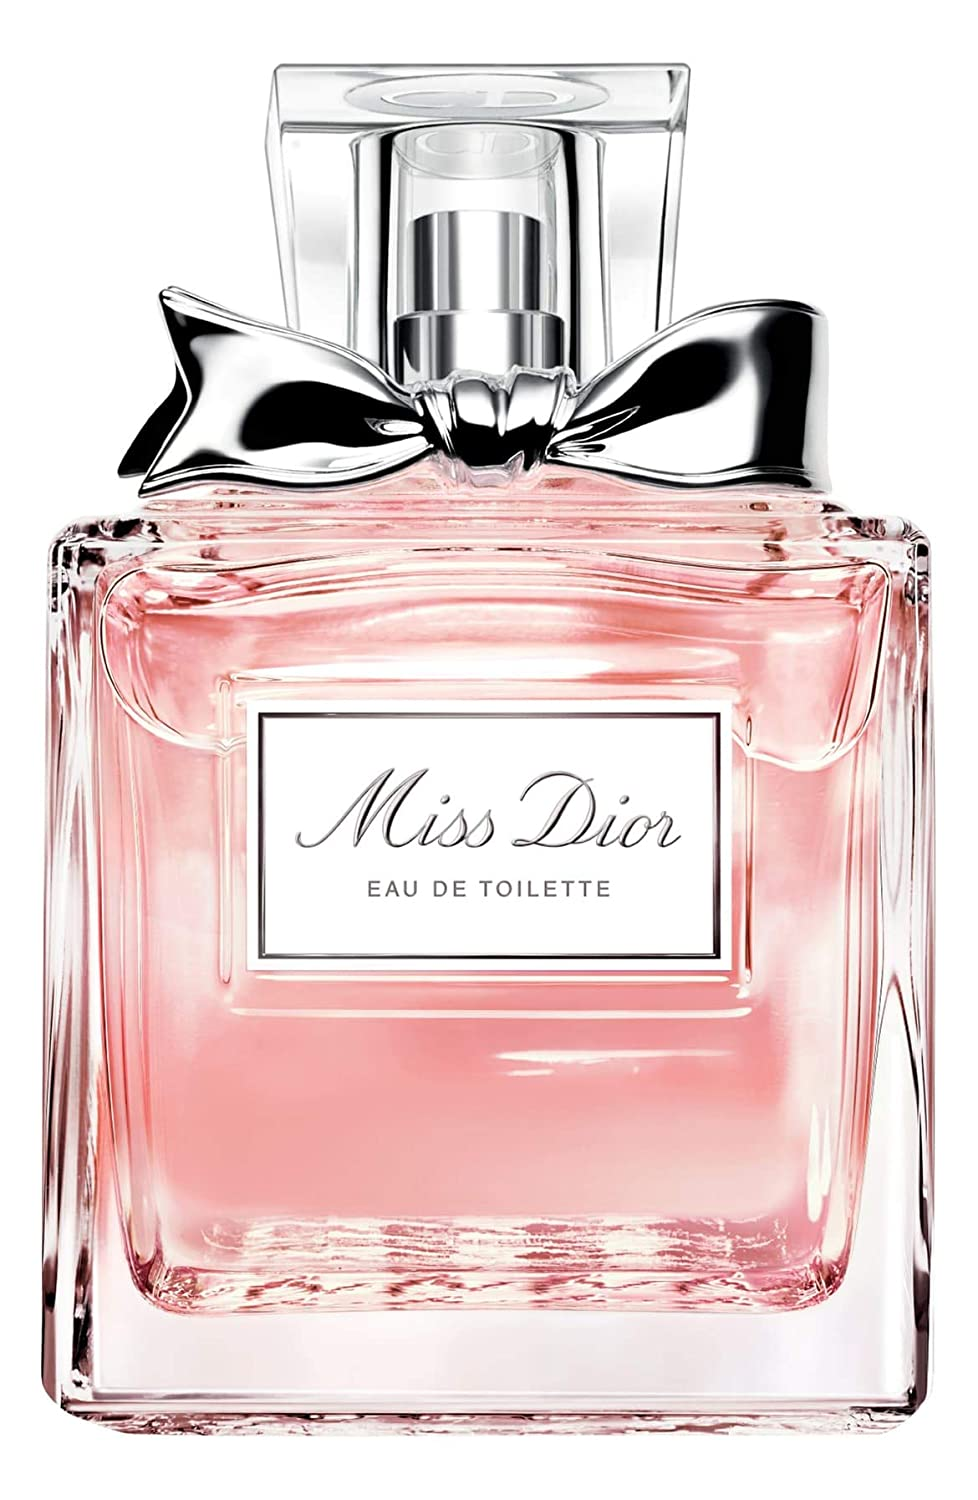 outlet Dior-Miss Dior specialty shop 3.4 oz edt spray Box NEW Sealed In